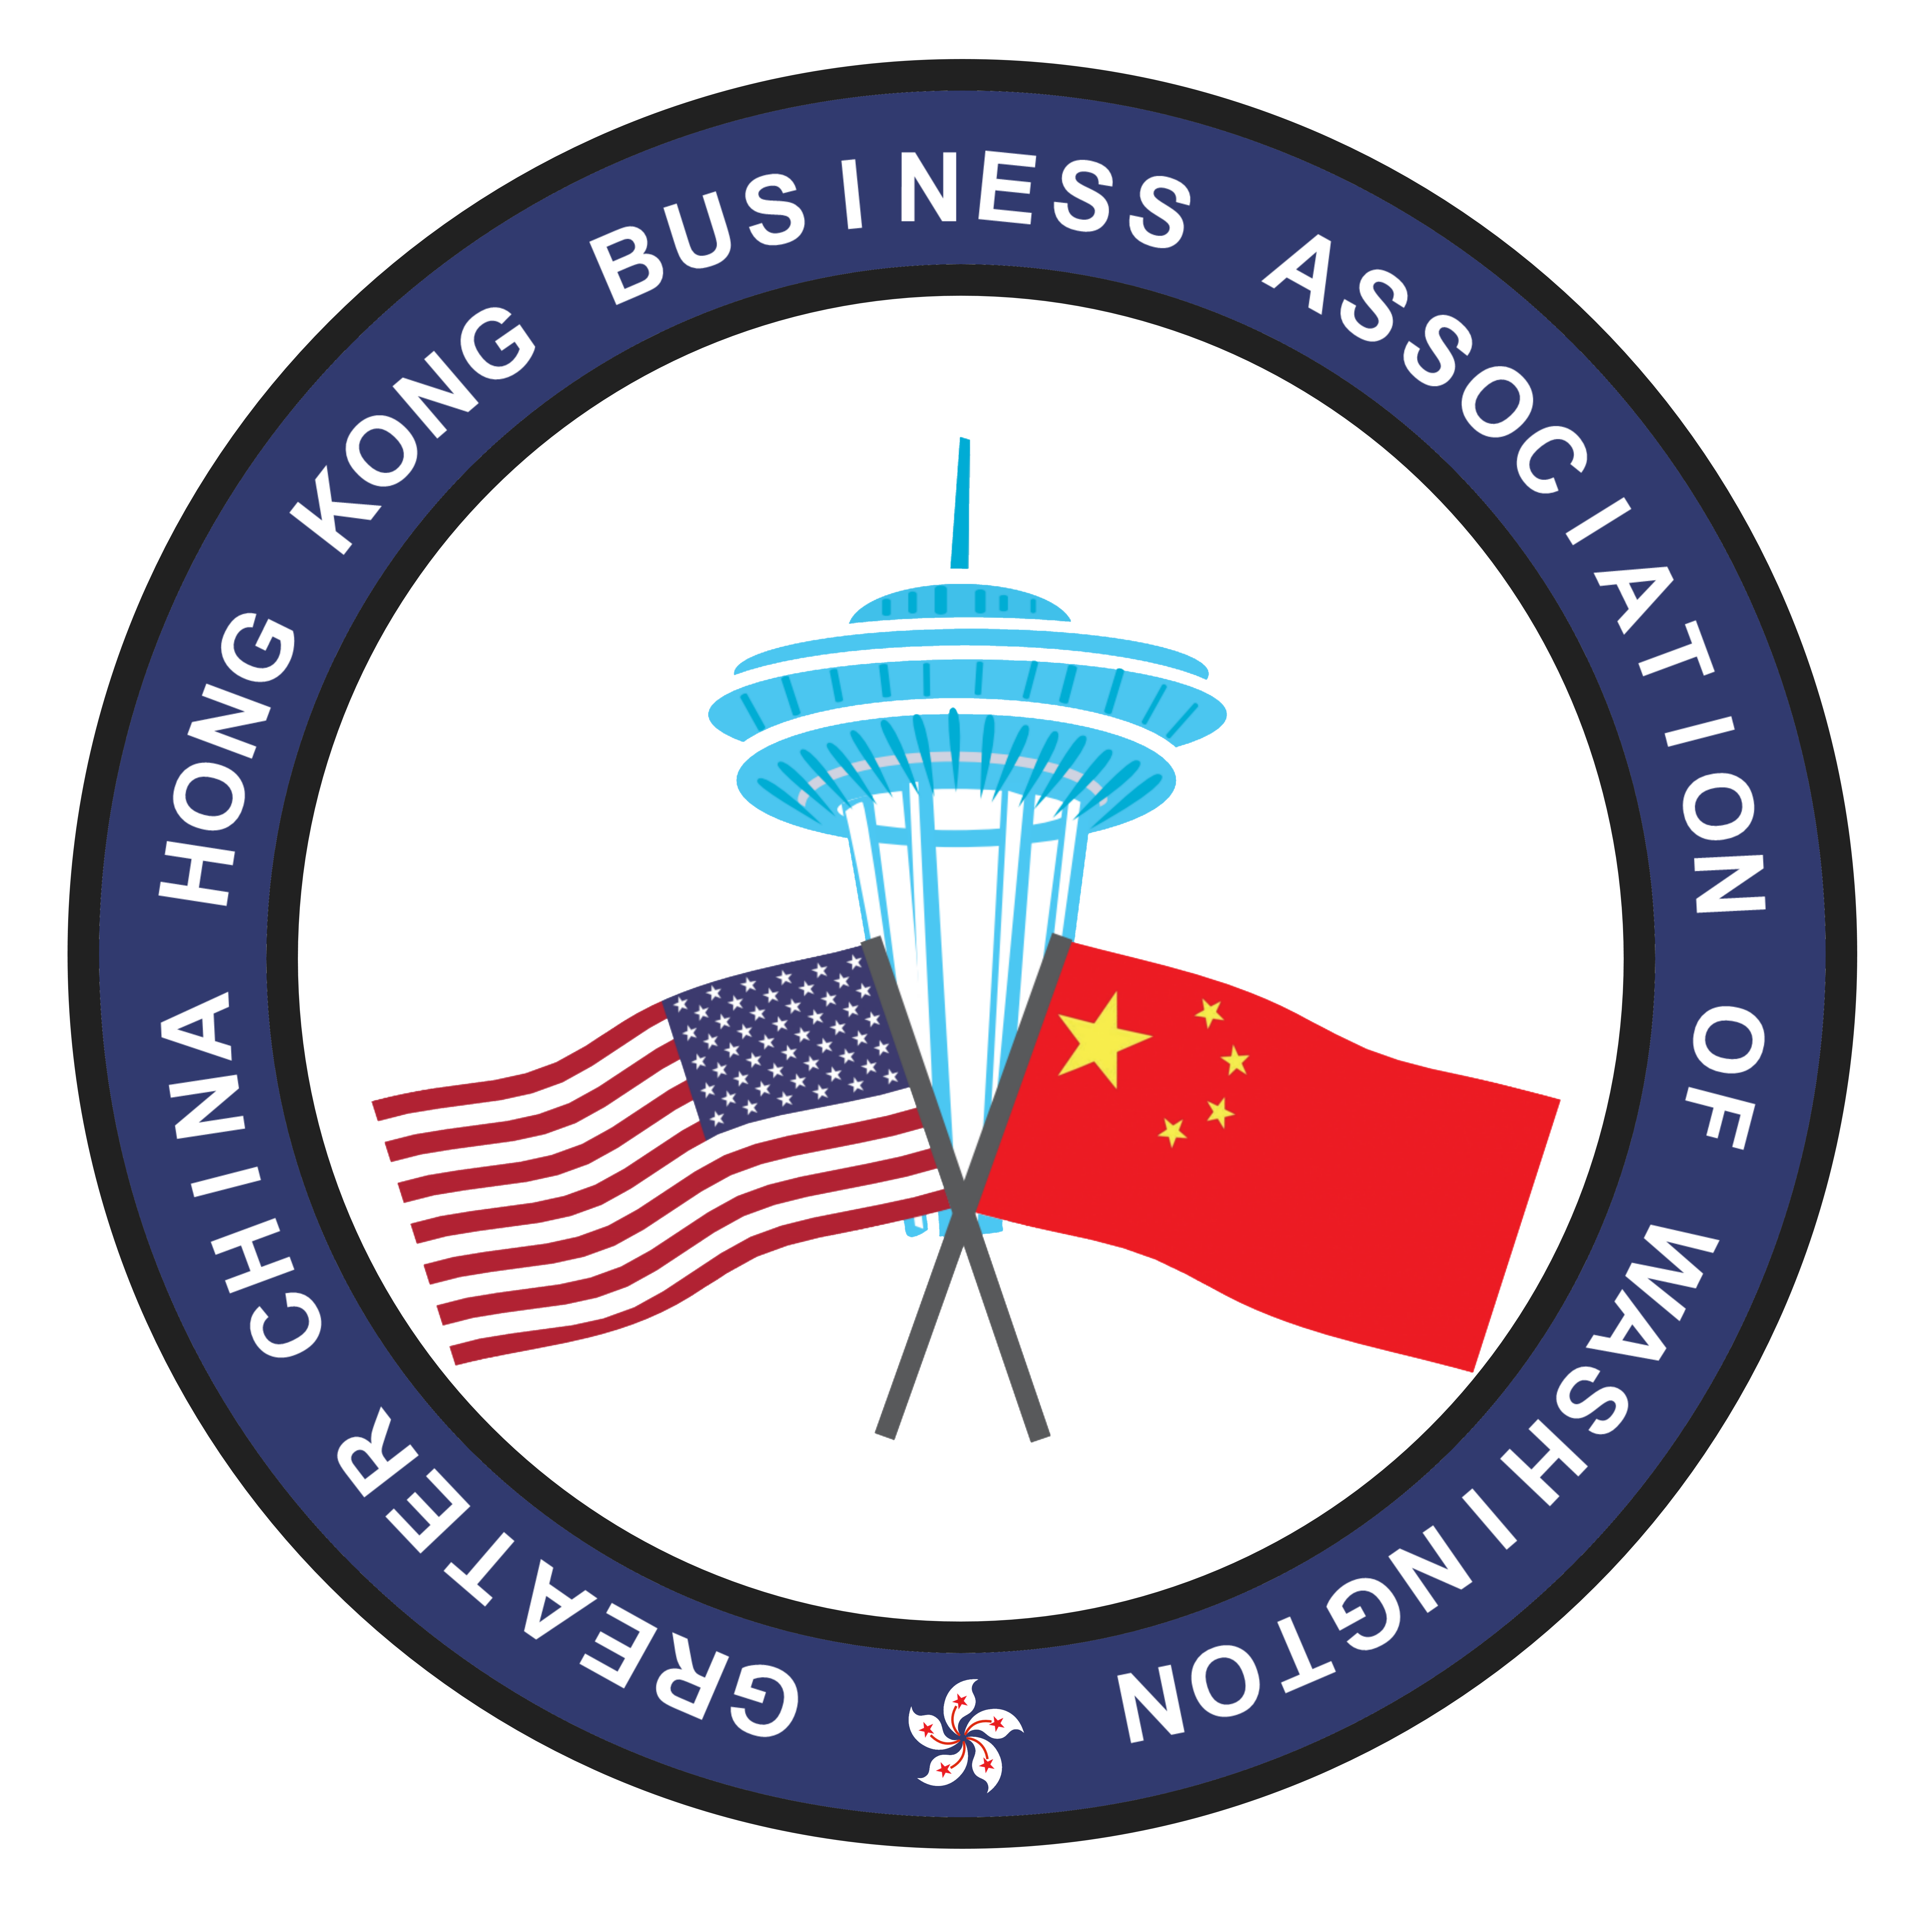 Greater China Hong Kong Business Association of Washington